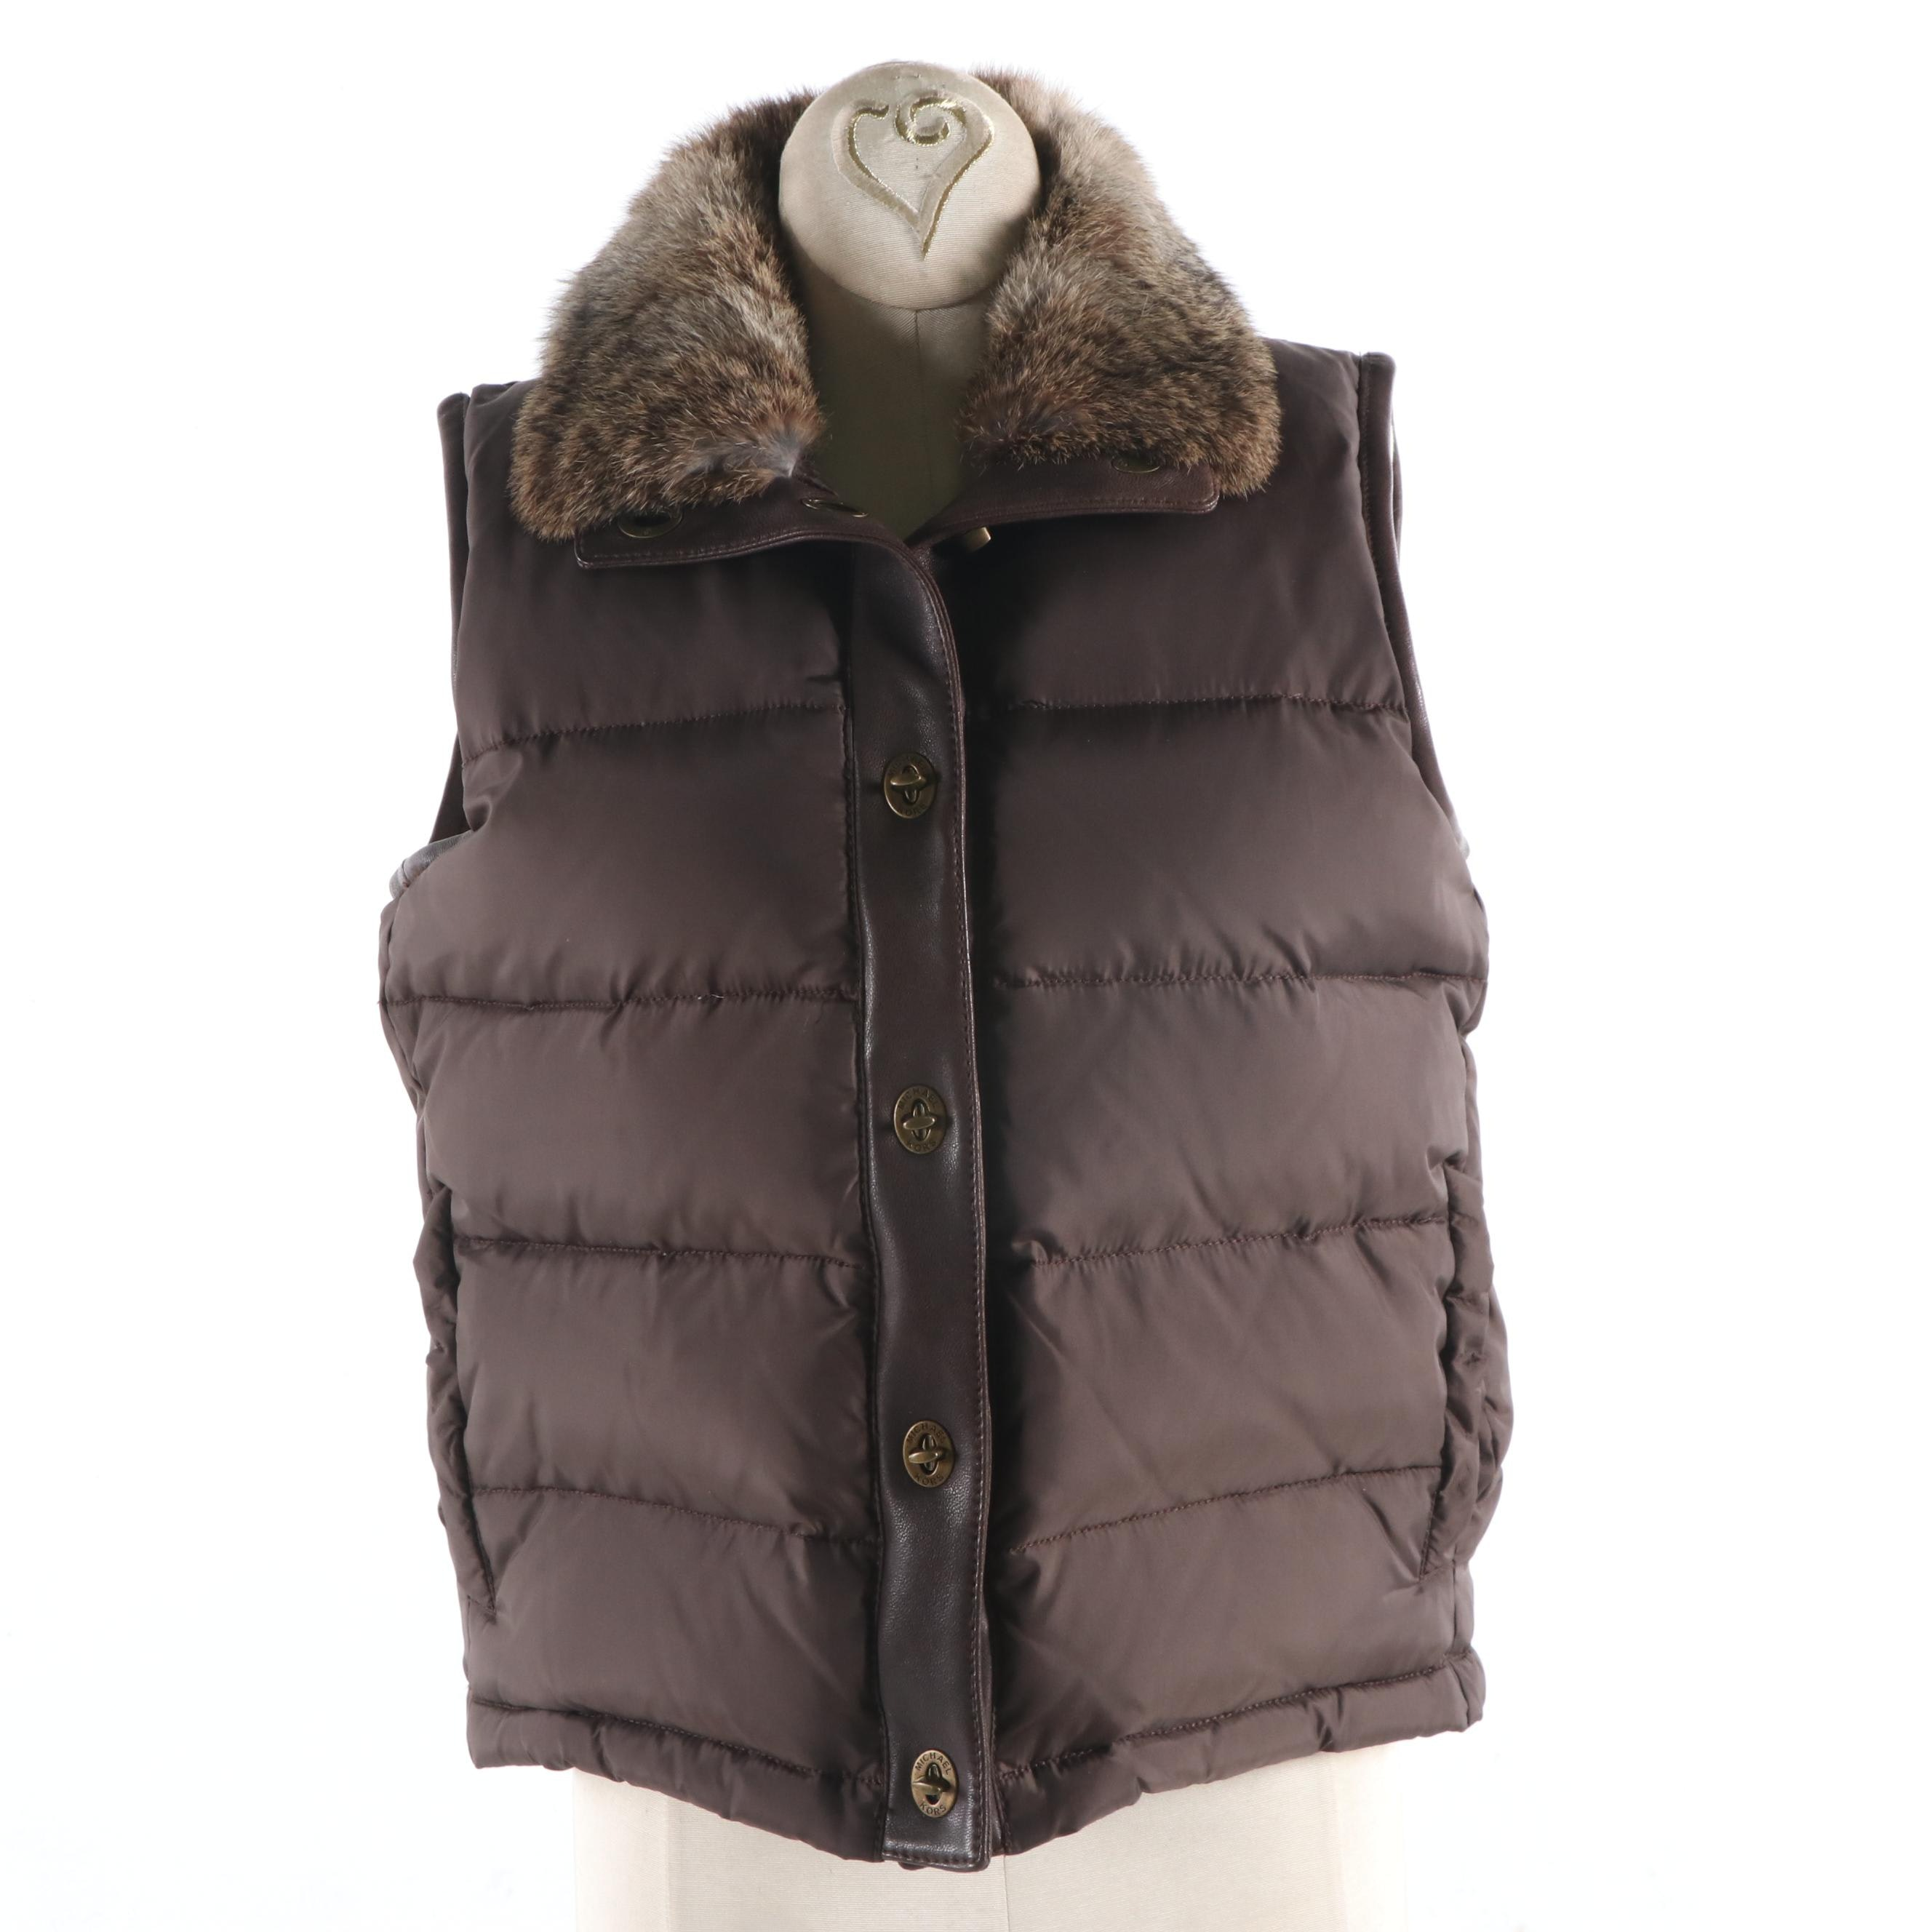 MK Michael Kors Brown Puffer Vest with Rabbit Fur and Leather Trim